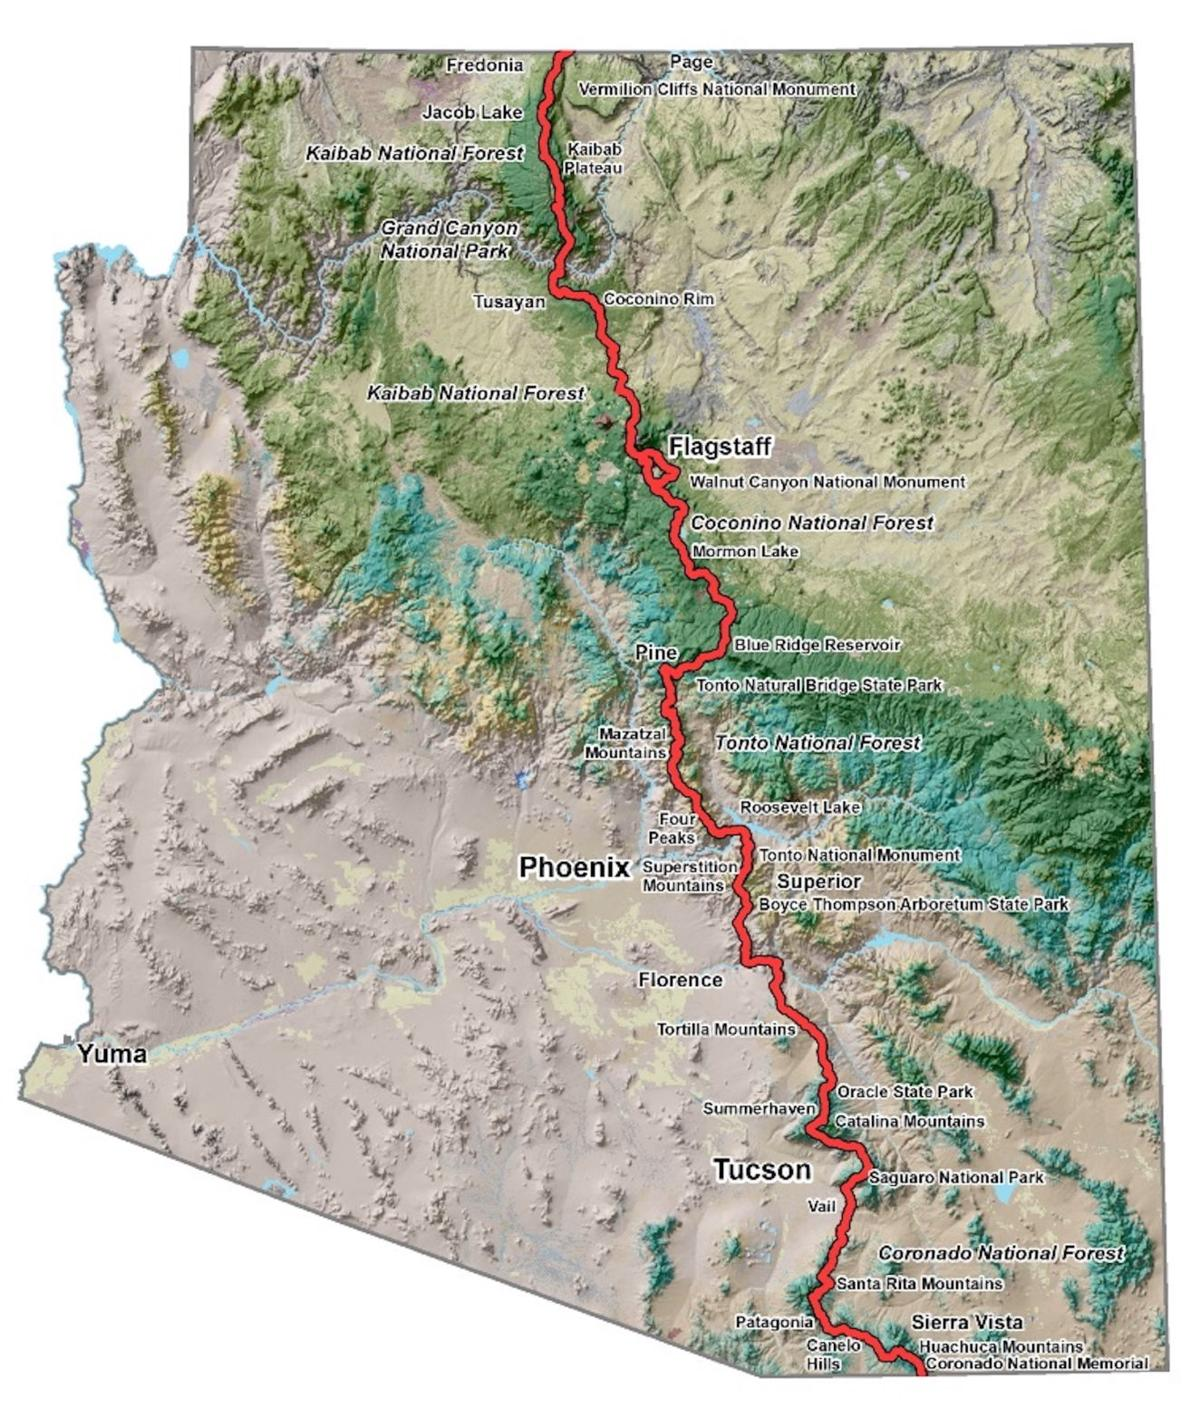 Weigh in on the future of the Arizona Trail | Local News ...